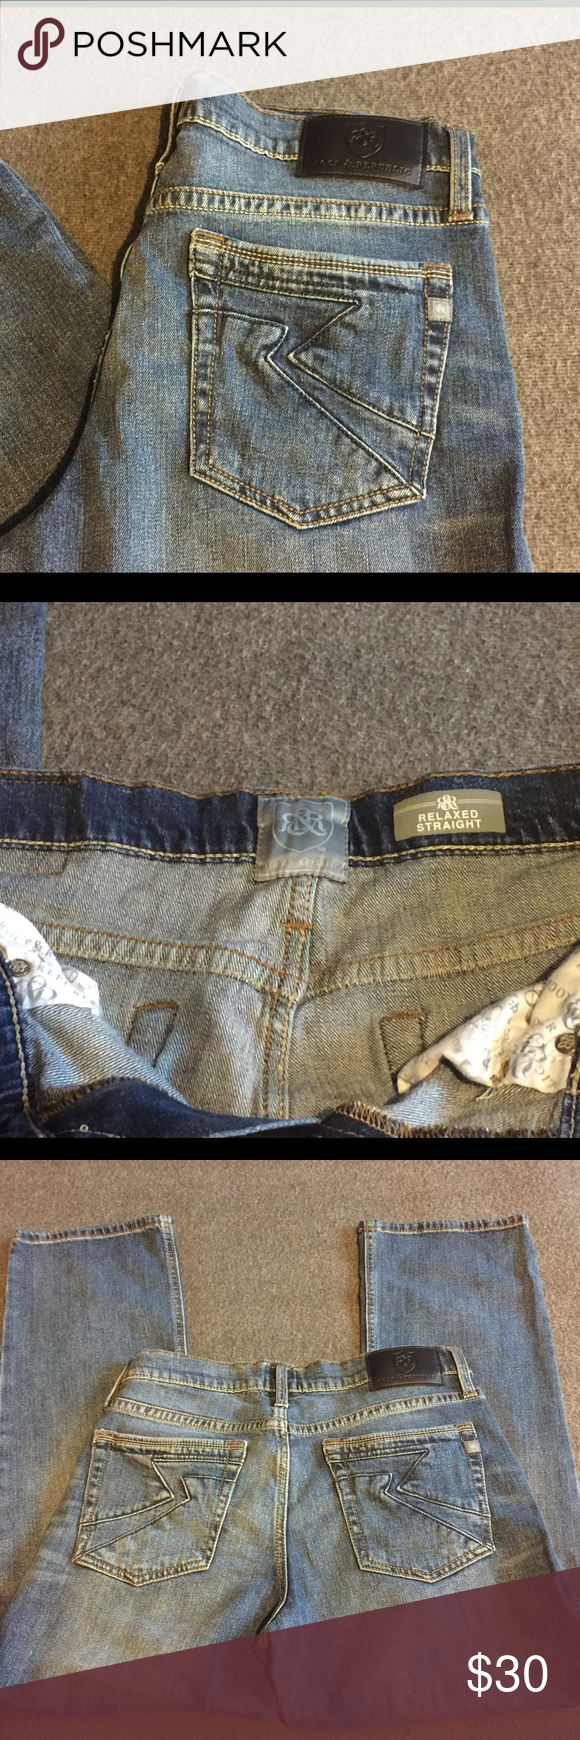 Rock & Republic Relaxed Straight GRADY 32x30 Great condition. Back pocket details. 98% Cotton, 2% Spandex. Rock & Republic Jeans Relaxed